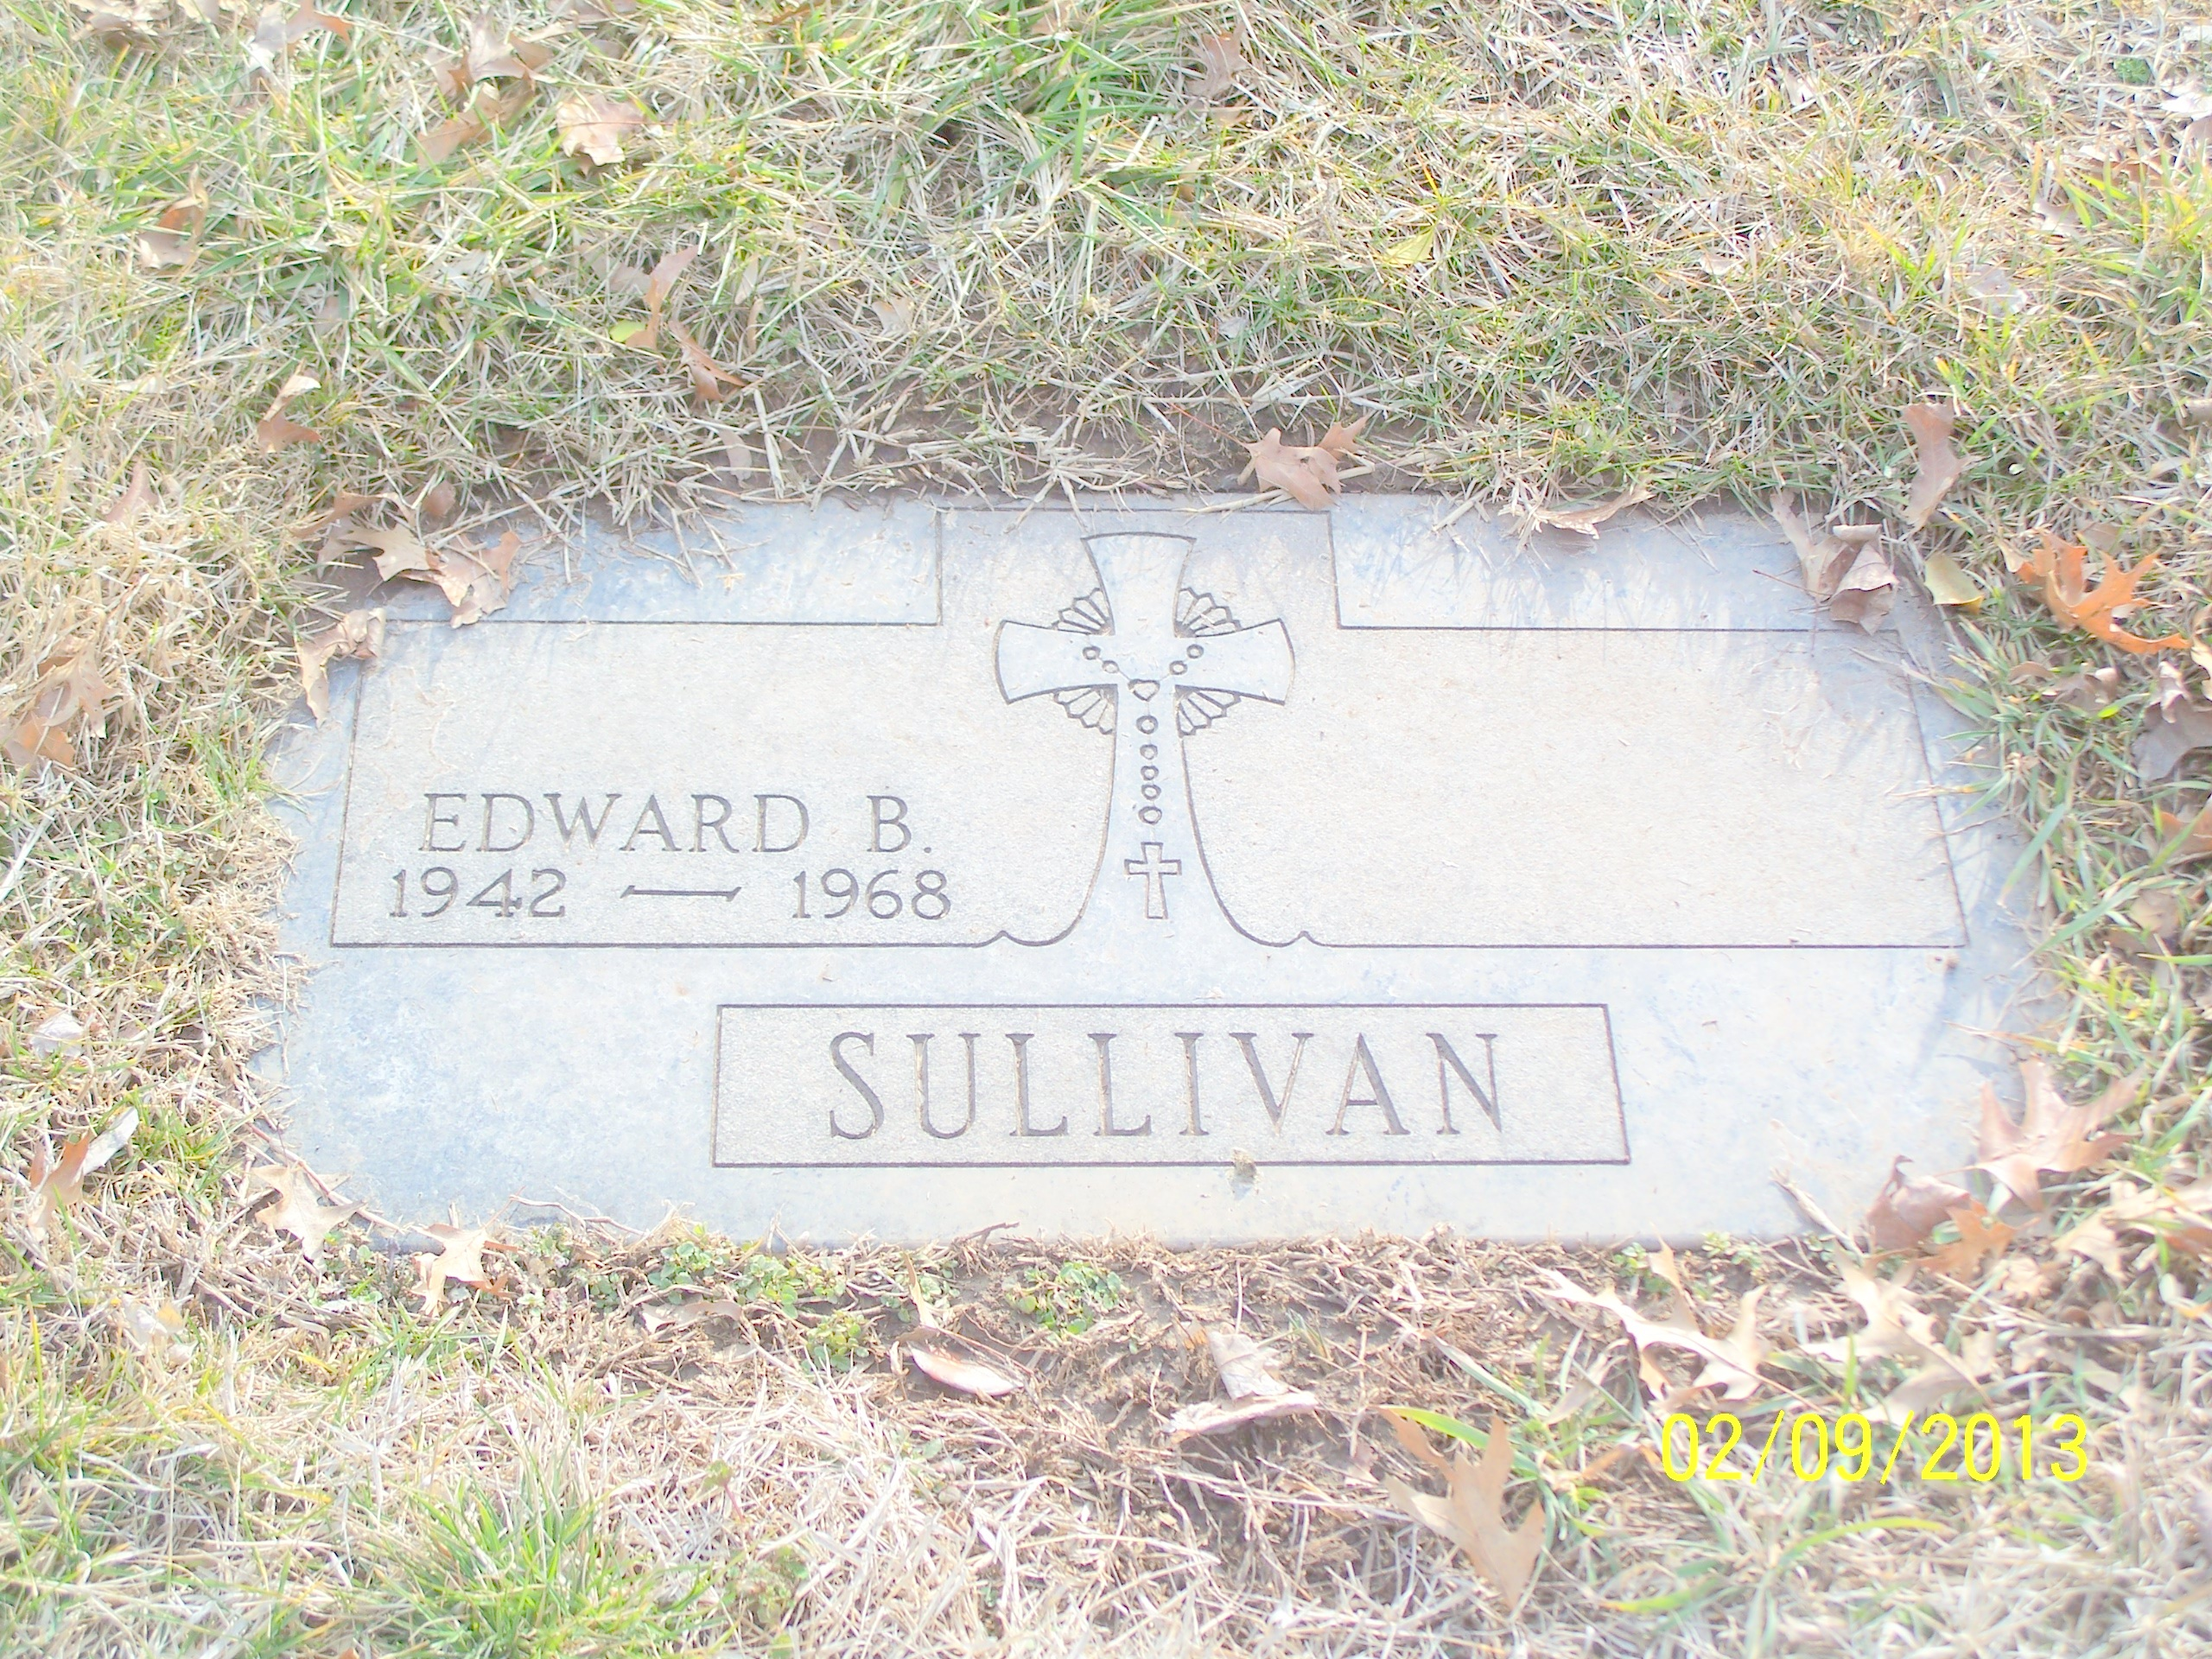 Auxiliary Officer Edward Blair Robert Sullivan | Dellwood Police Department, Missouri